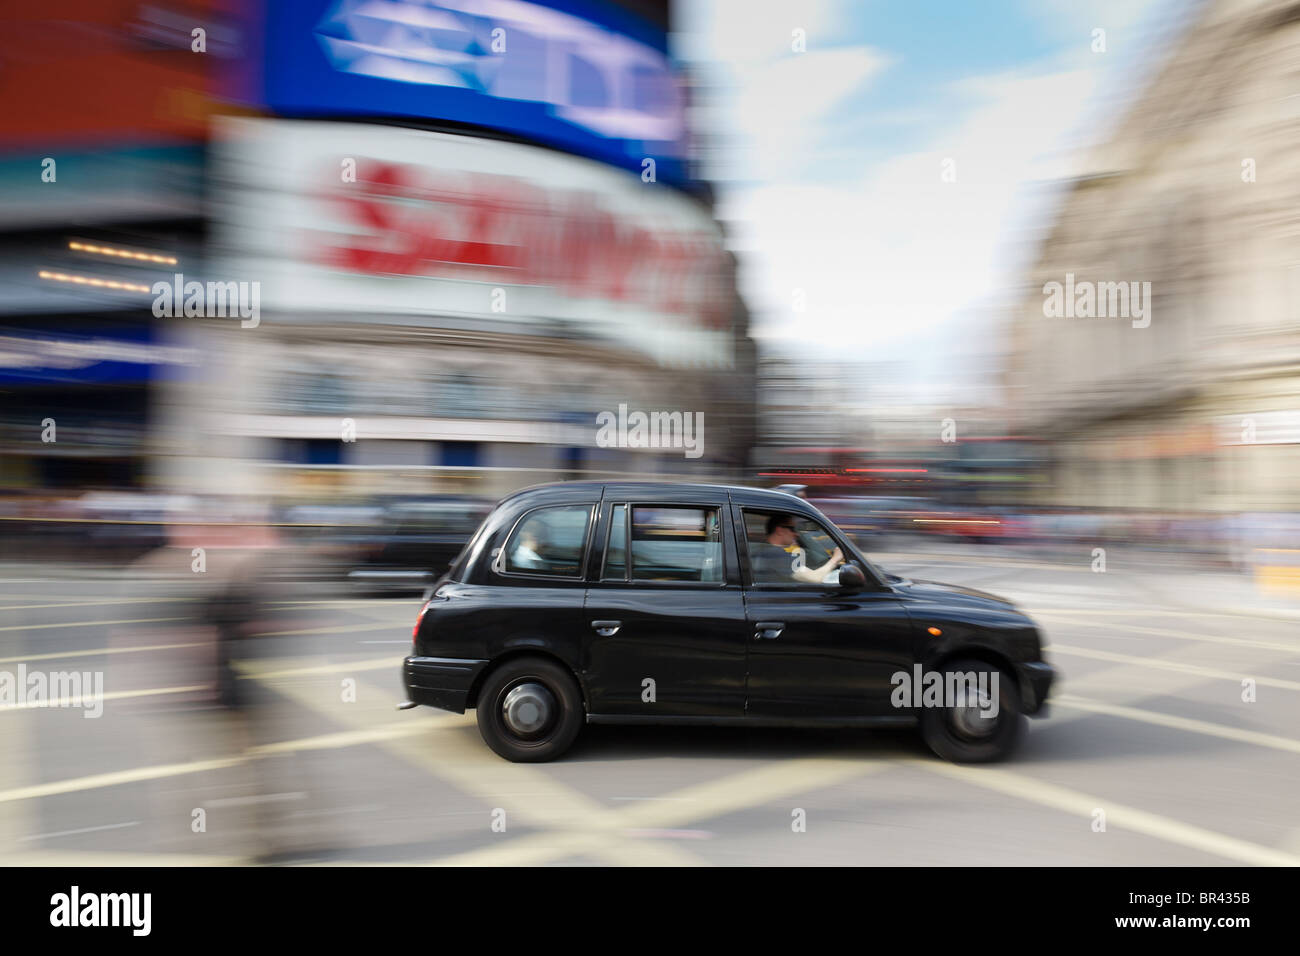 London taxi at speed through Piccadilly Curcus, London - Stock Image